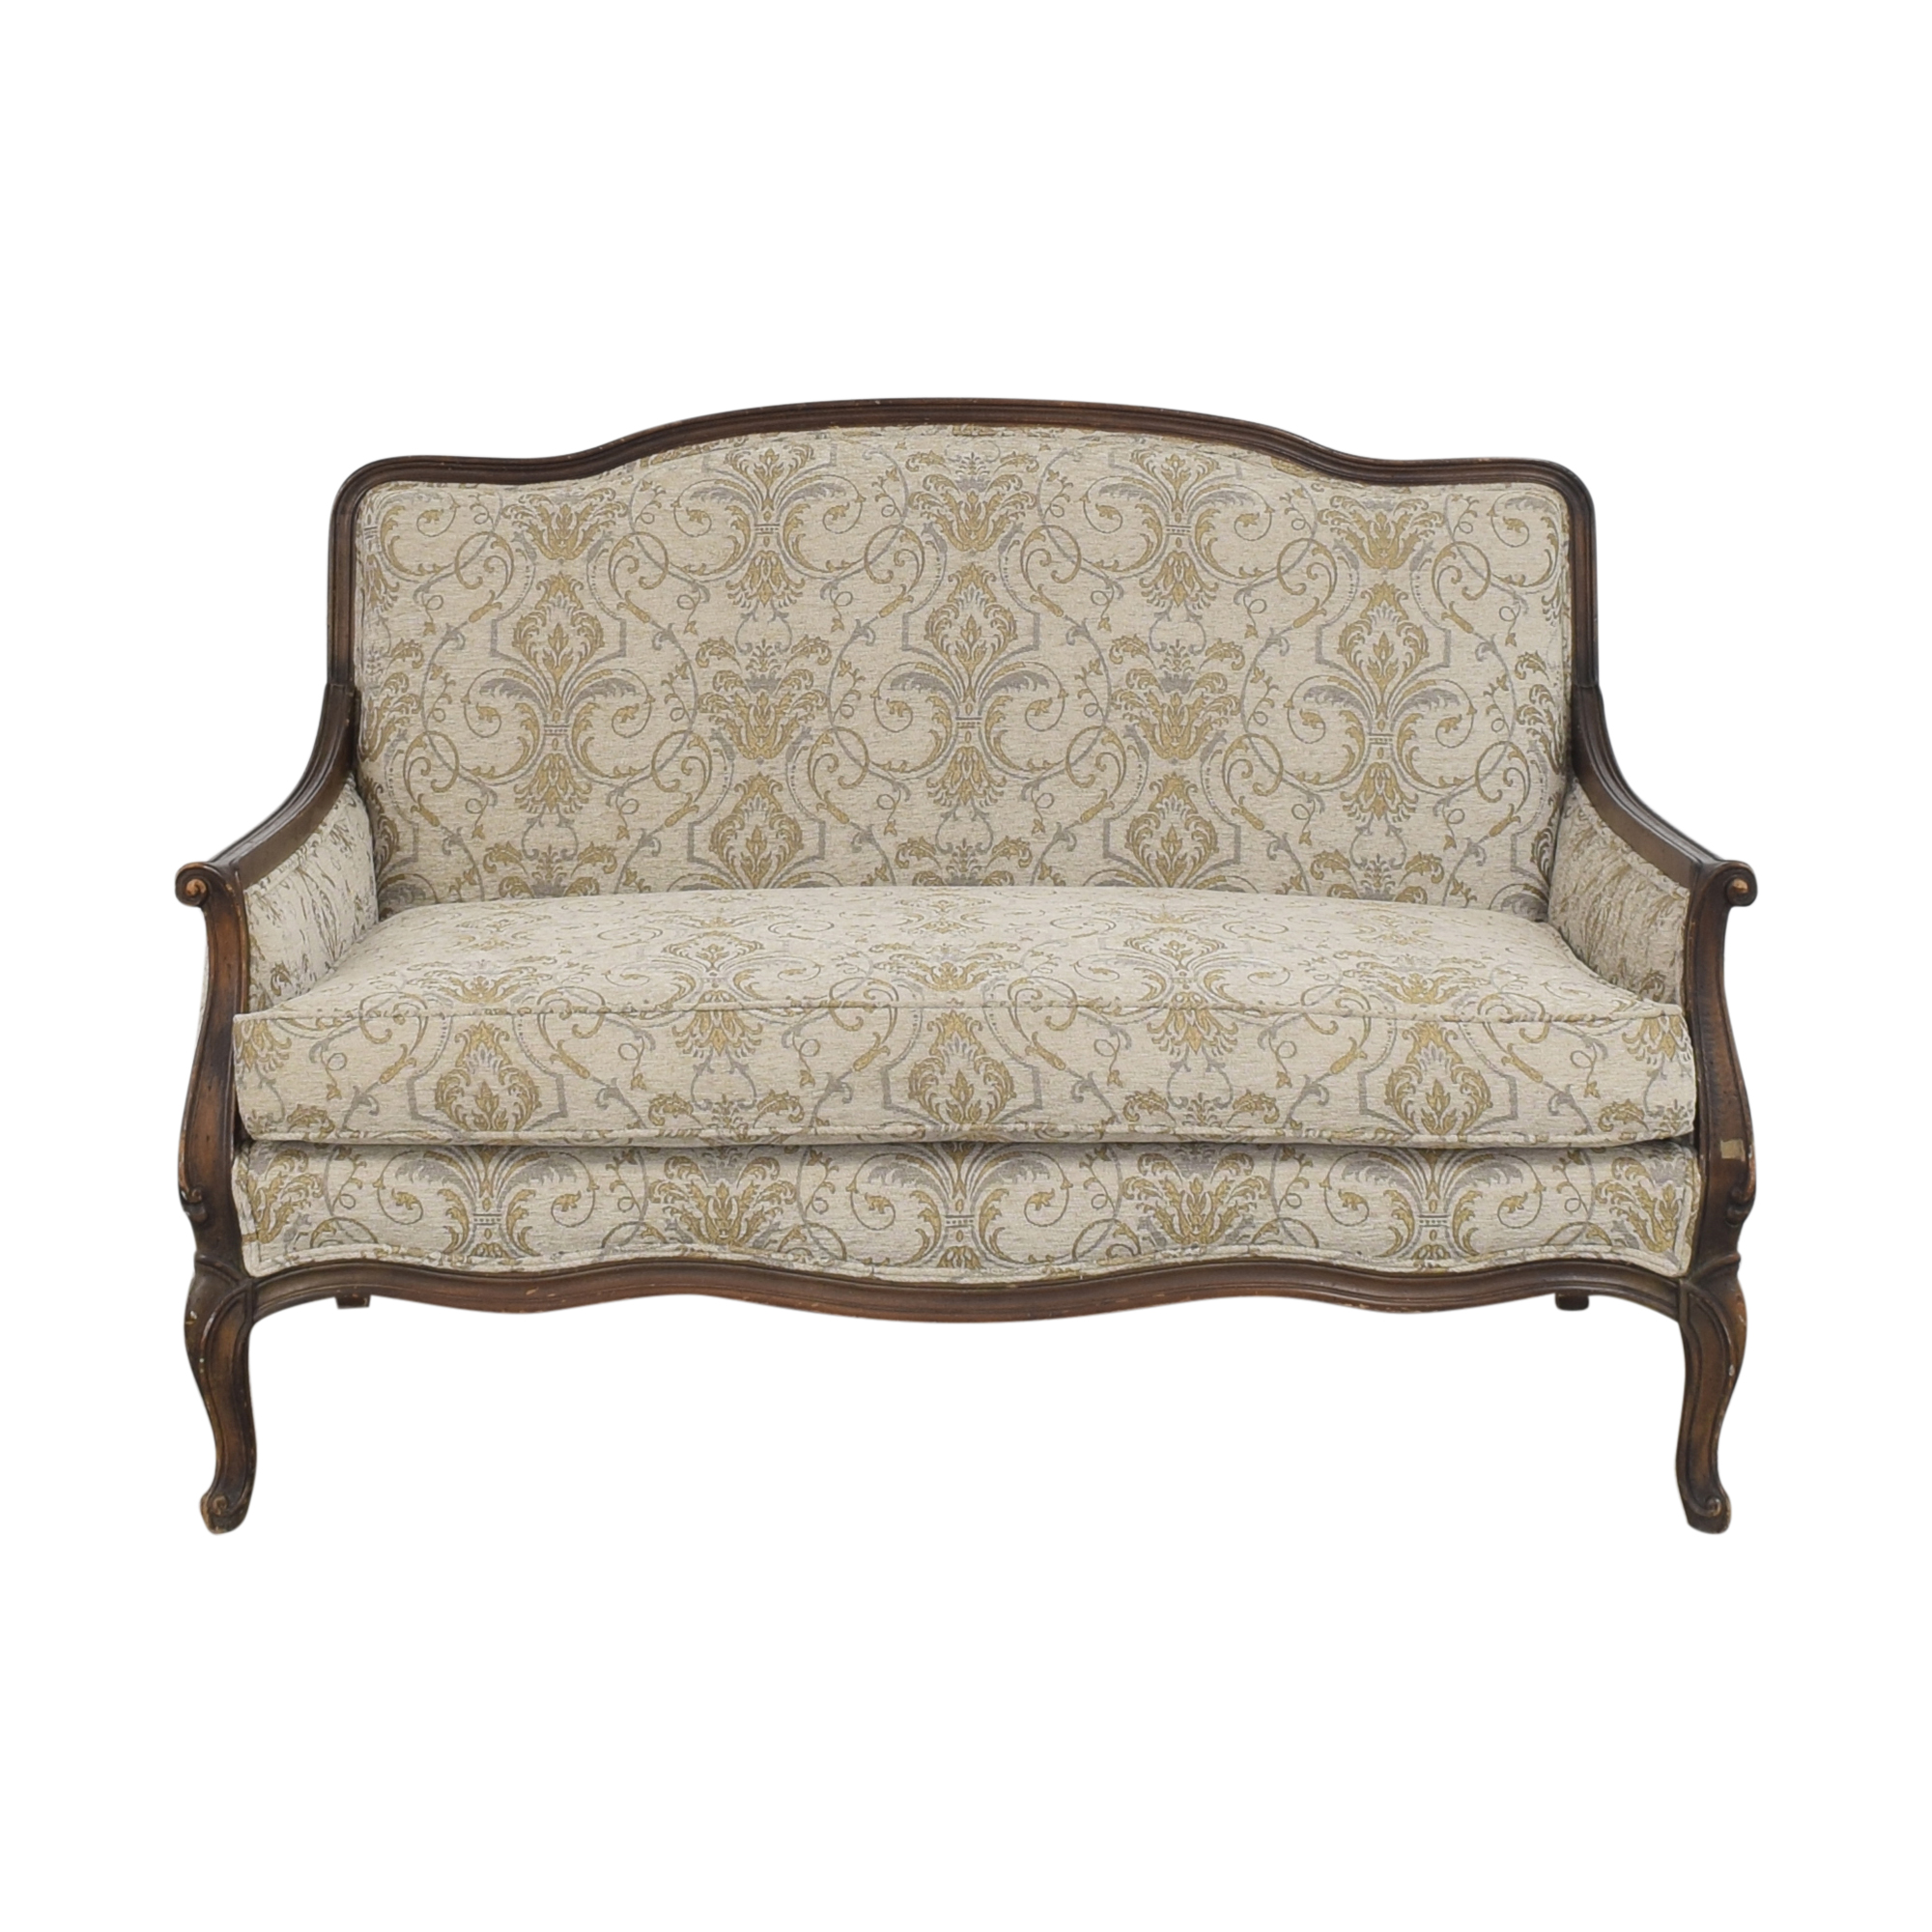 Bassett Furniture Bassett Furniture French-Style Settee ma